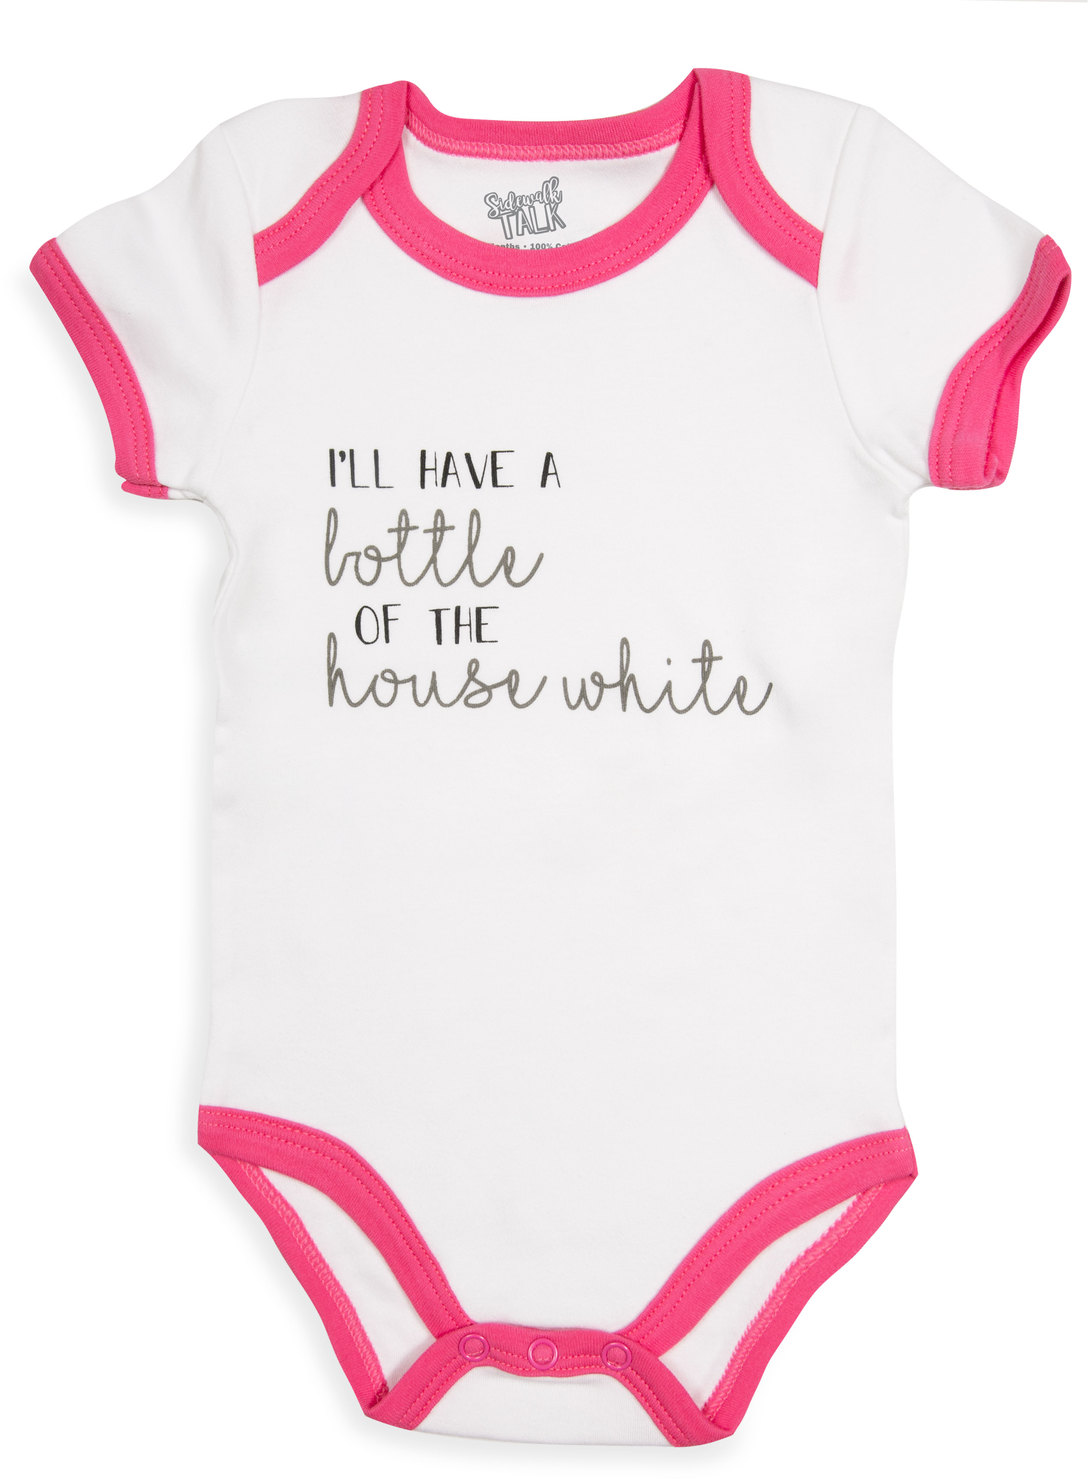 House White by Sidewalk Talk - House White - 6-12 Months Pink Trimmed Onesie